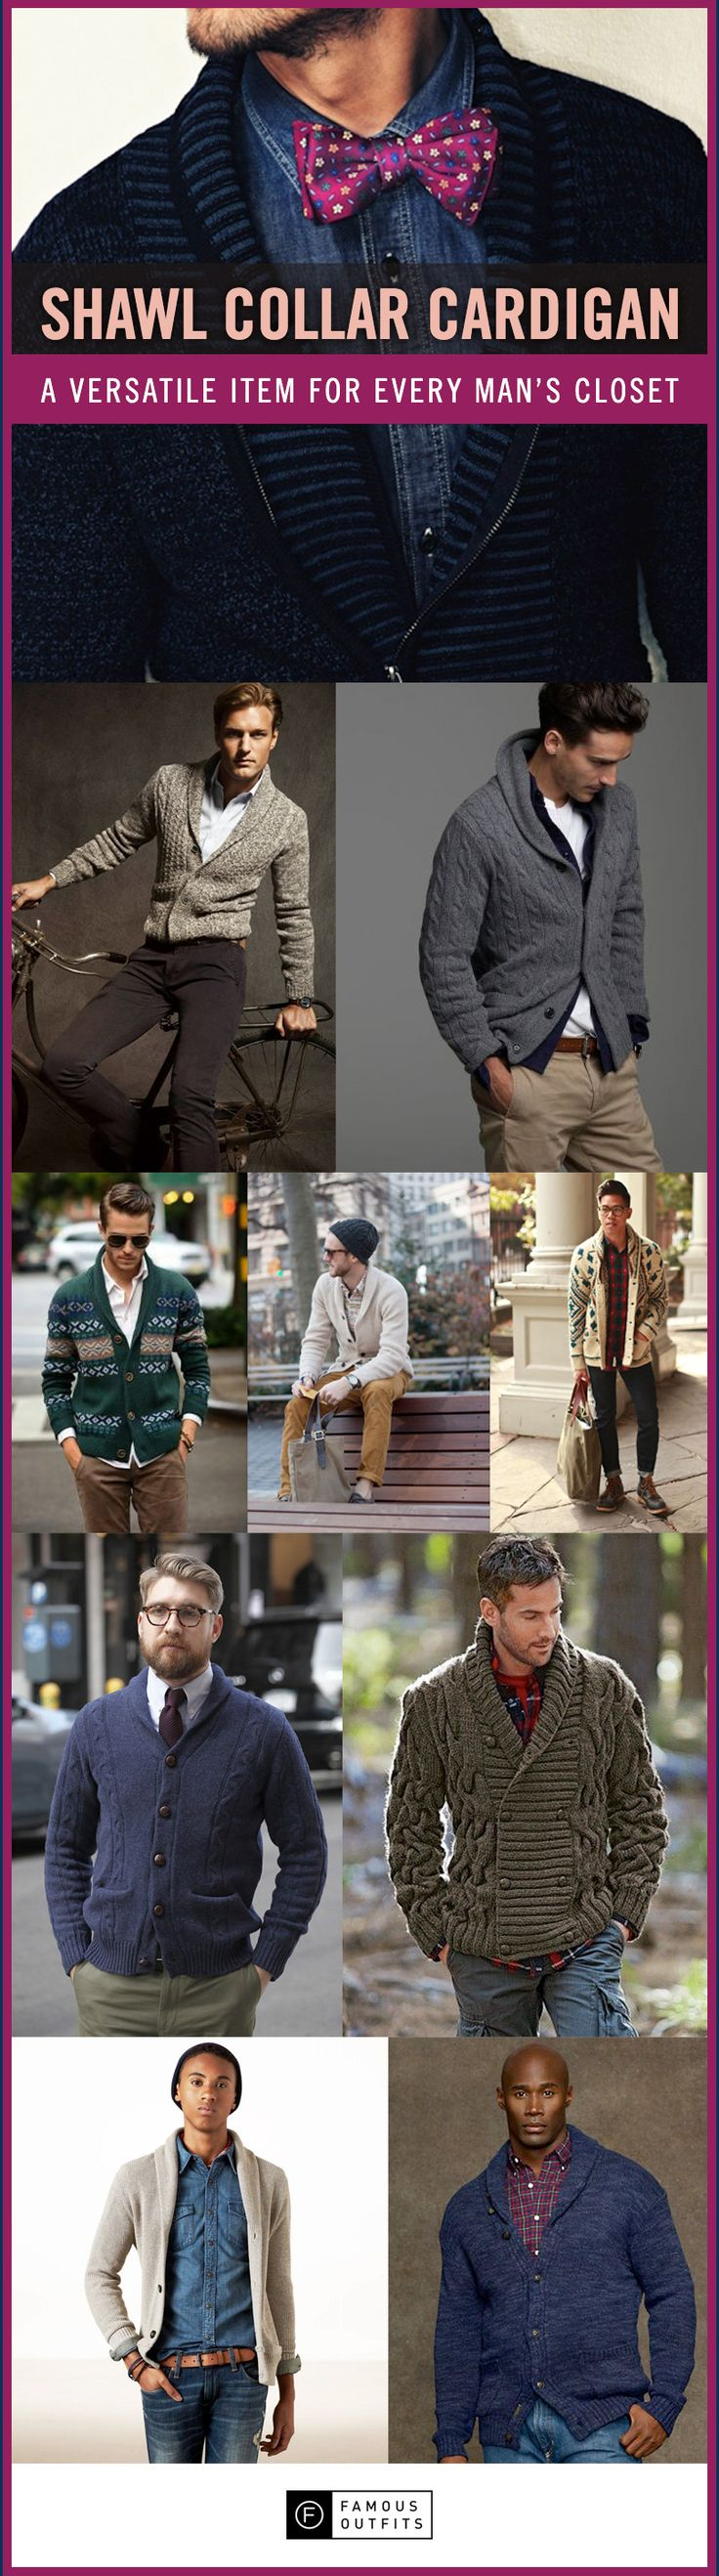 Cool weather is upon us. Be prepared and look good doing it. #stylebar #LookGood #winter